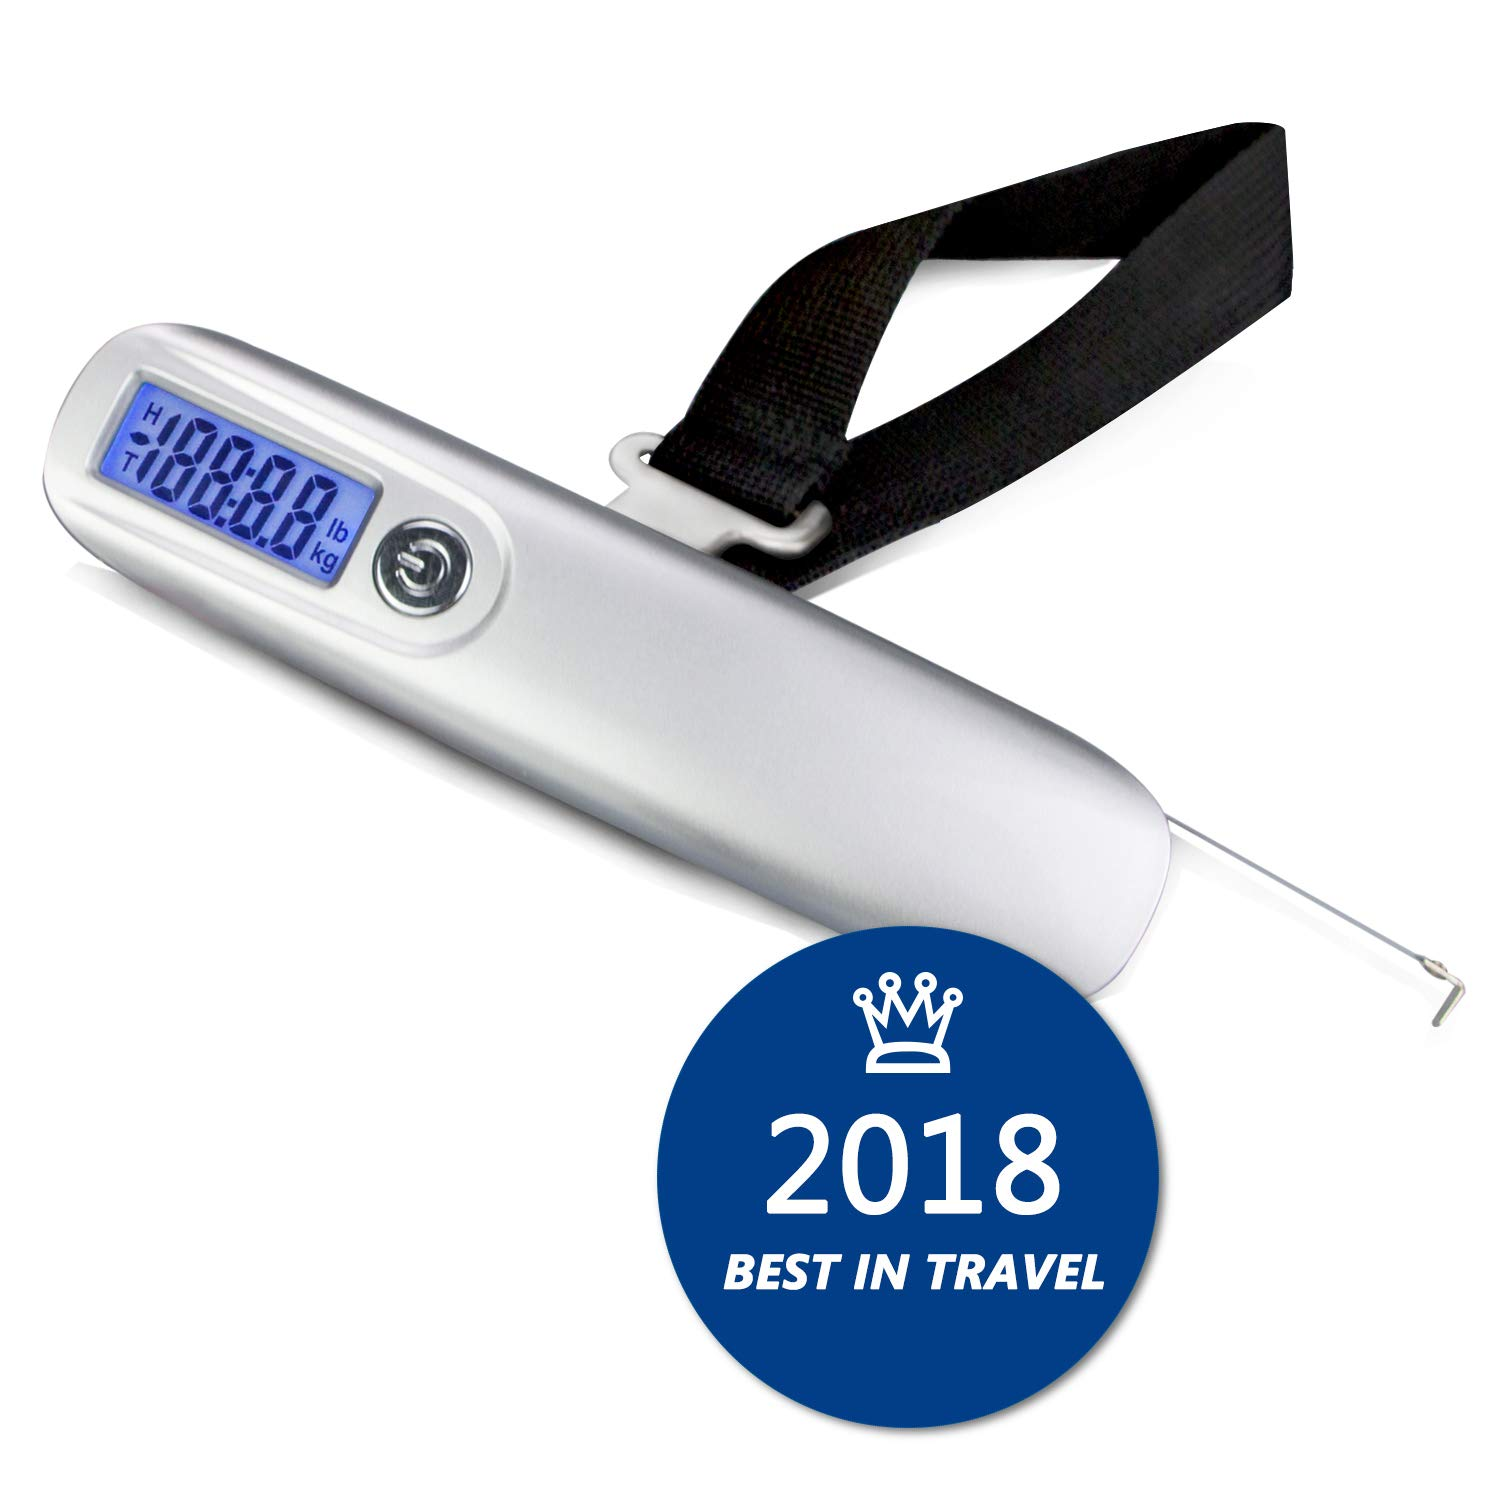 TripNeeds Micro Advanced Digital Luggage Scale 50kg Capacity